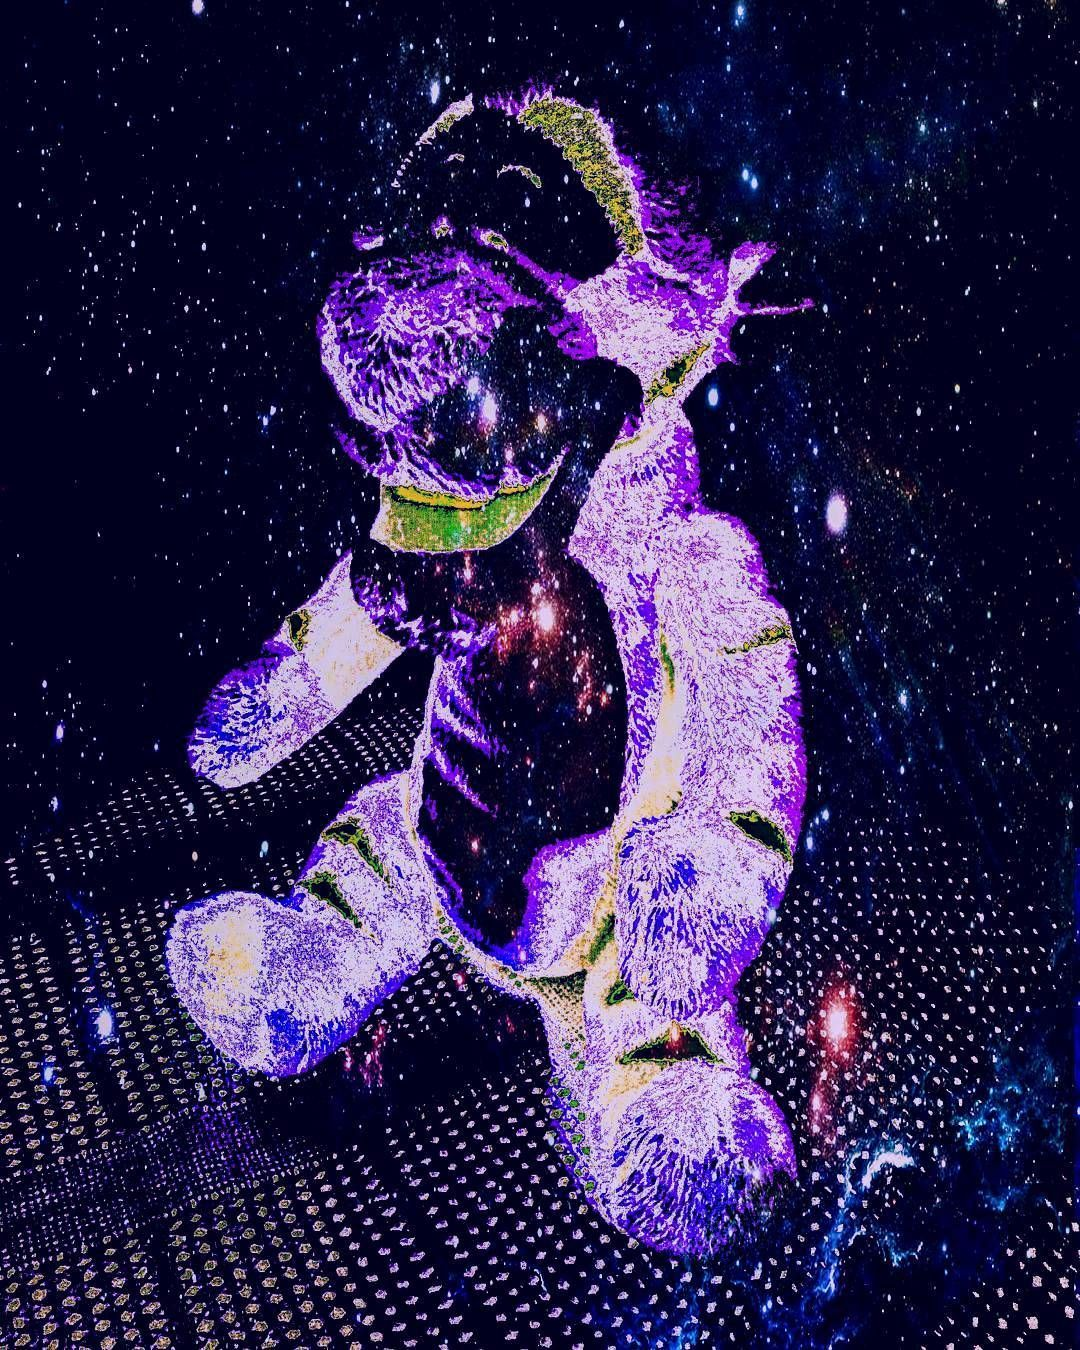 Space tigger  Tigger at his best #tigger #space #joker #sk8life #edit #photography #photo #skate #skateordie #skateboard #disney #disneyworld #skate #dog #babysk8 #photography #photo #edit #graphicdesign #nature #skater #skateart #skateboardingisfun #skatelife #skategram #street #streetart #music #babySk8 http://tipsrazzi.com/ipost/1507144860036862773/?code=BTqdEPXjZM1